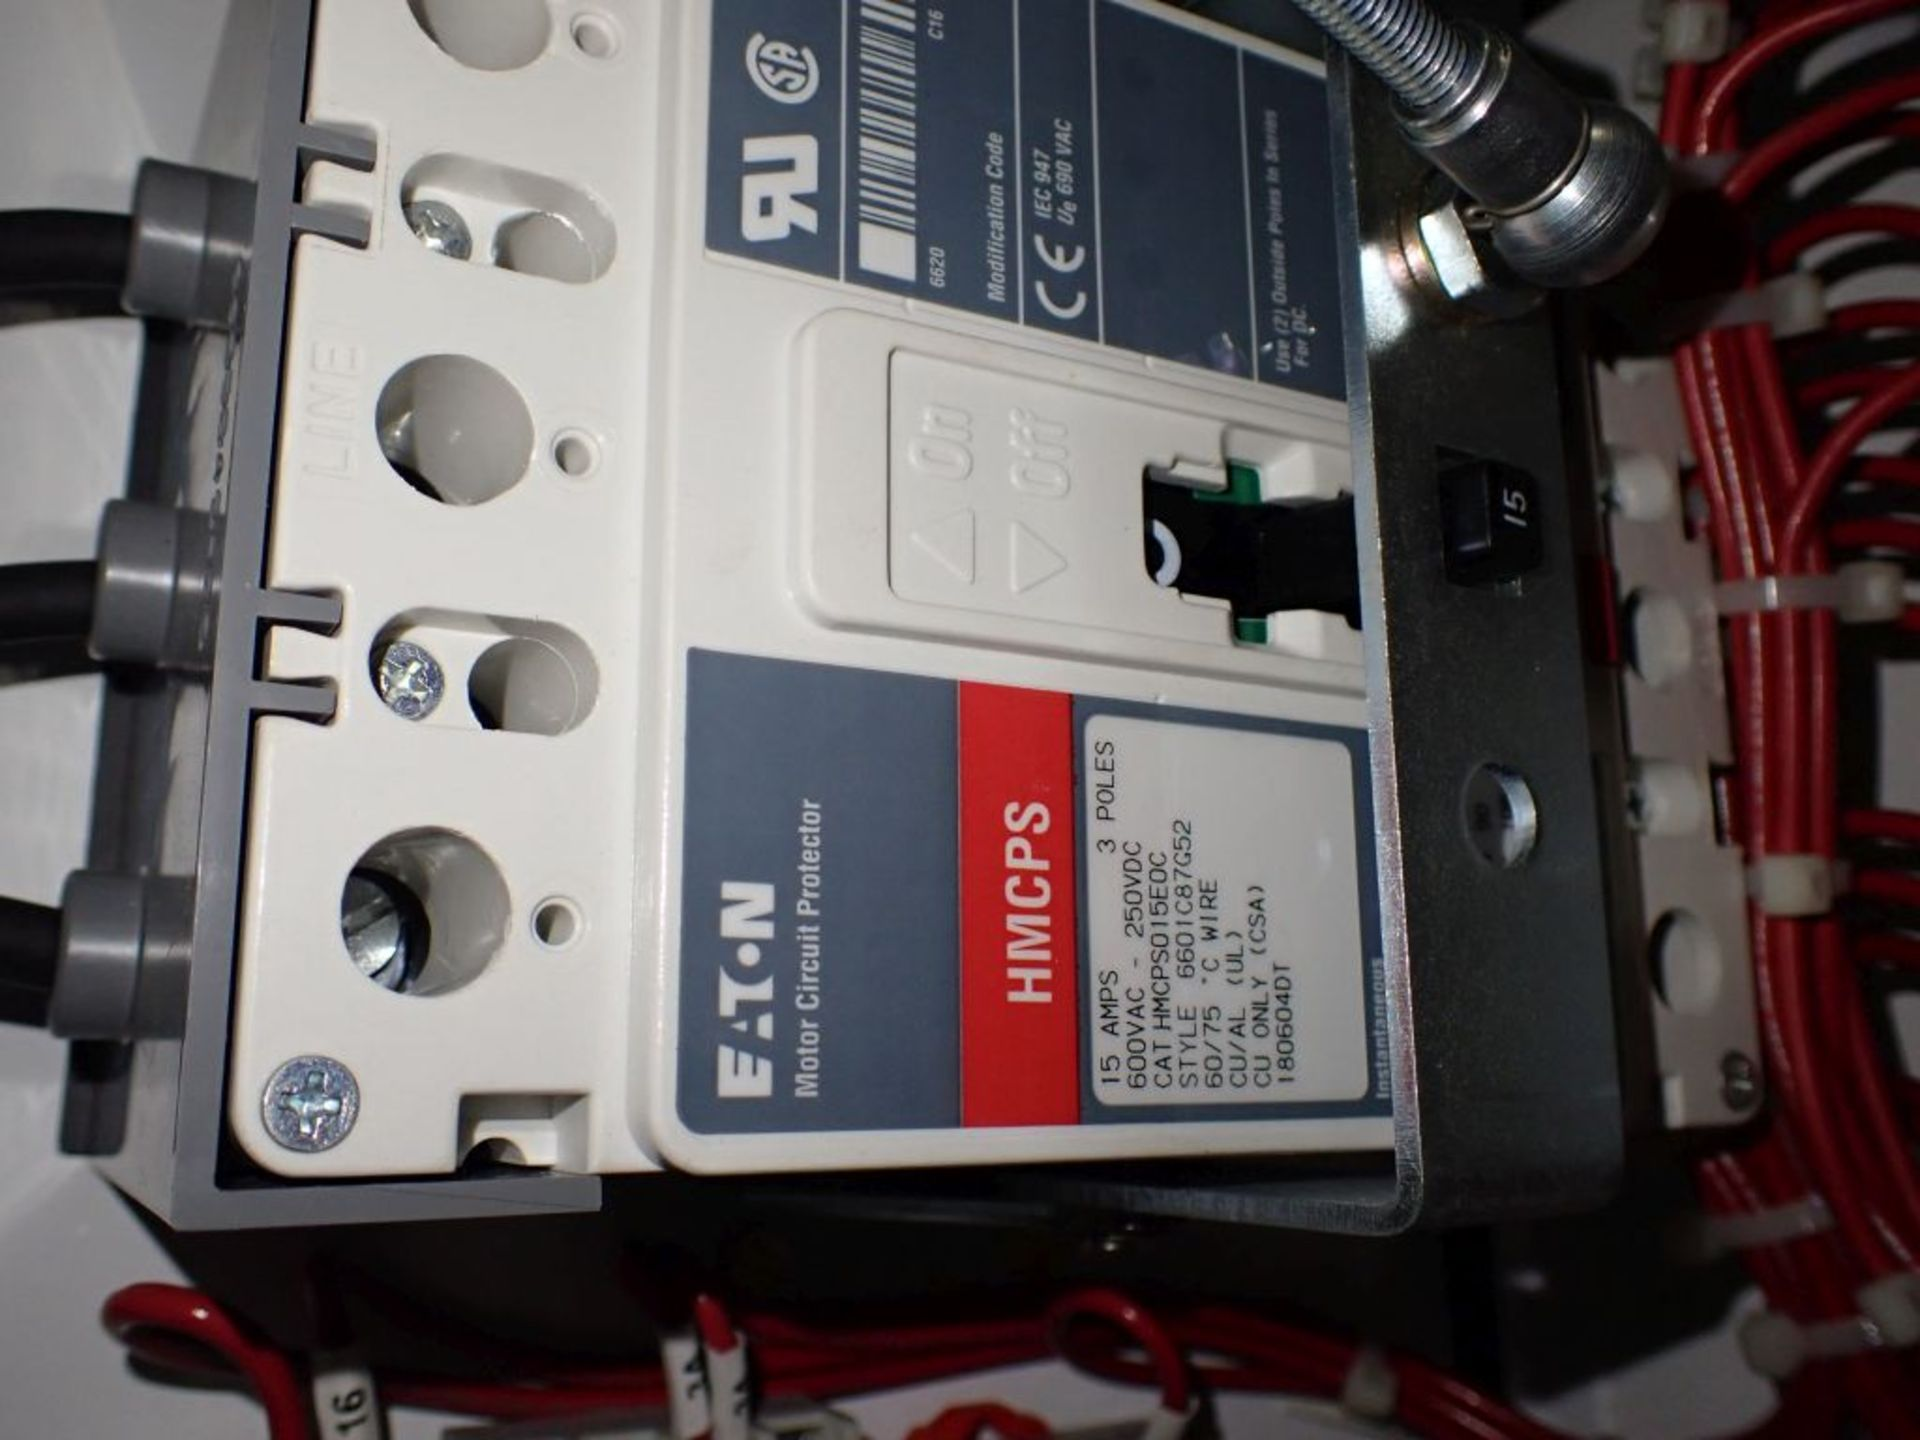 Eaton Freedom 2100 Series Motor Control Center | (11) F206-30A-10HP; (5) F206-15A-10HP; (1) SVX900- - Image 64 of 102